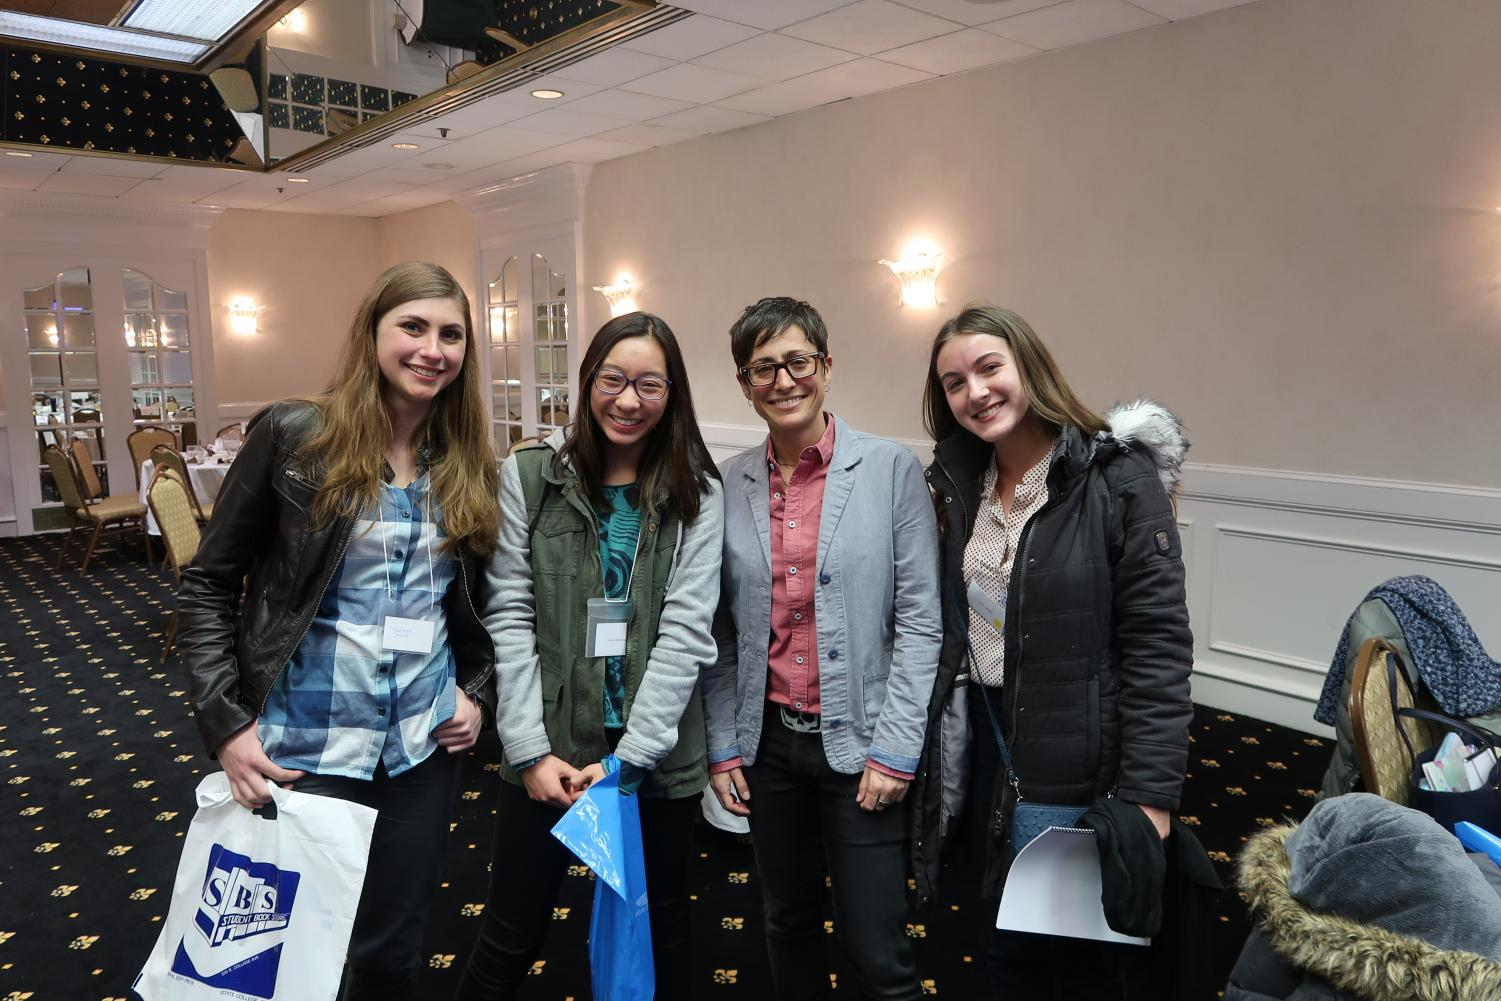 "State High seniors Hannah Strouse, Hana Wiessmann and Grace Handler excitedly met and talked to Danielle Feinberg during a break period at the Women in Science conference. The students expressed their love for Pixar, Danielle Feinberg's work and the power of films. ""I learned the most from Danielle's talk, I didn't know how much work was put into such little details in each of Pixar's films,"" Strouse said."